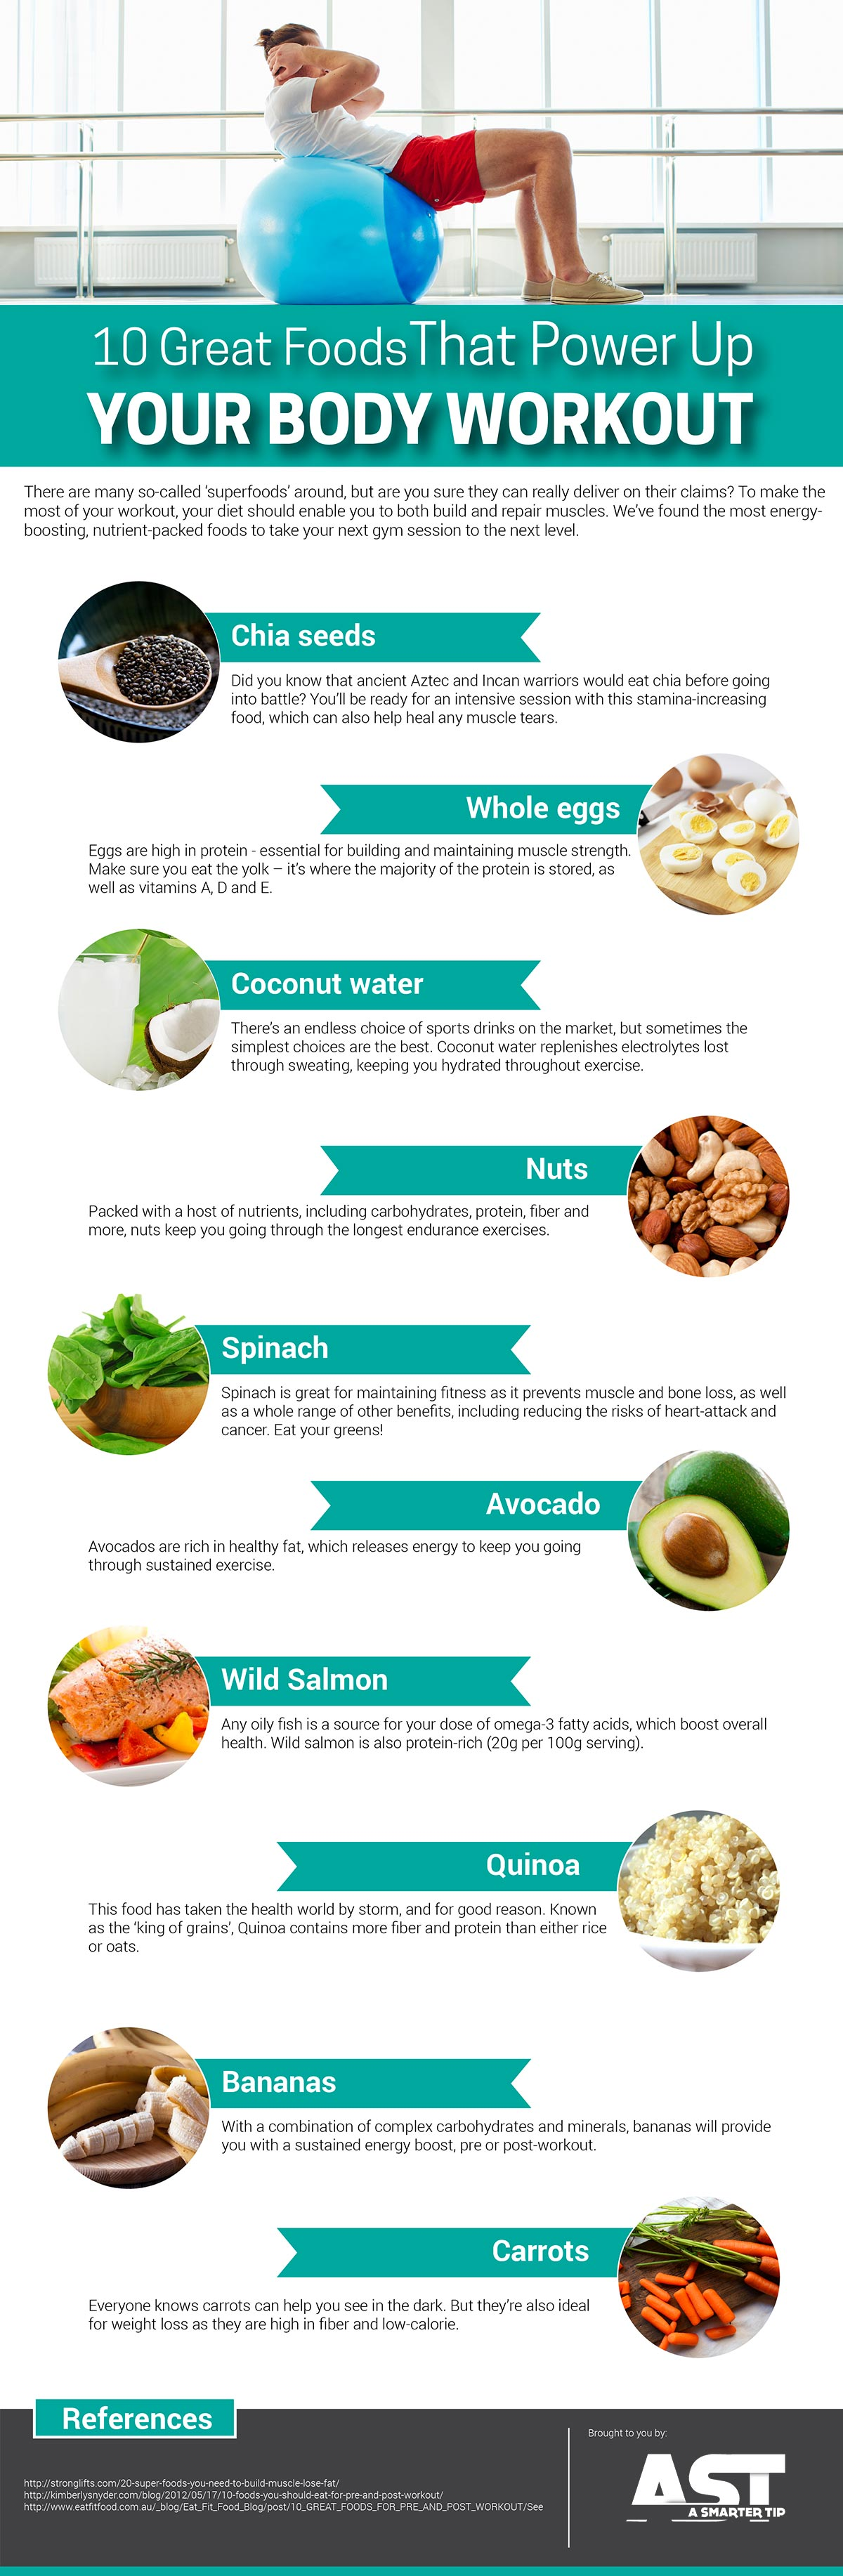 10 Great Foods That Power Up Your Body Workout Infographic